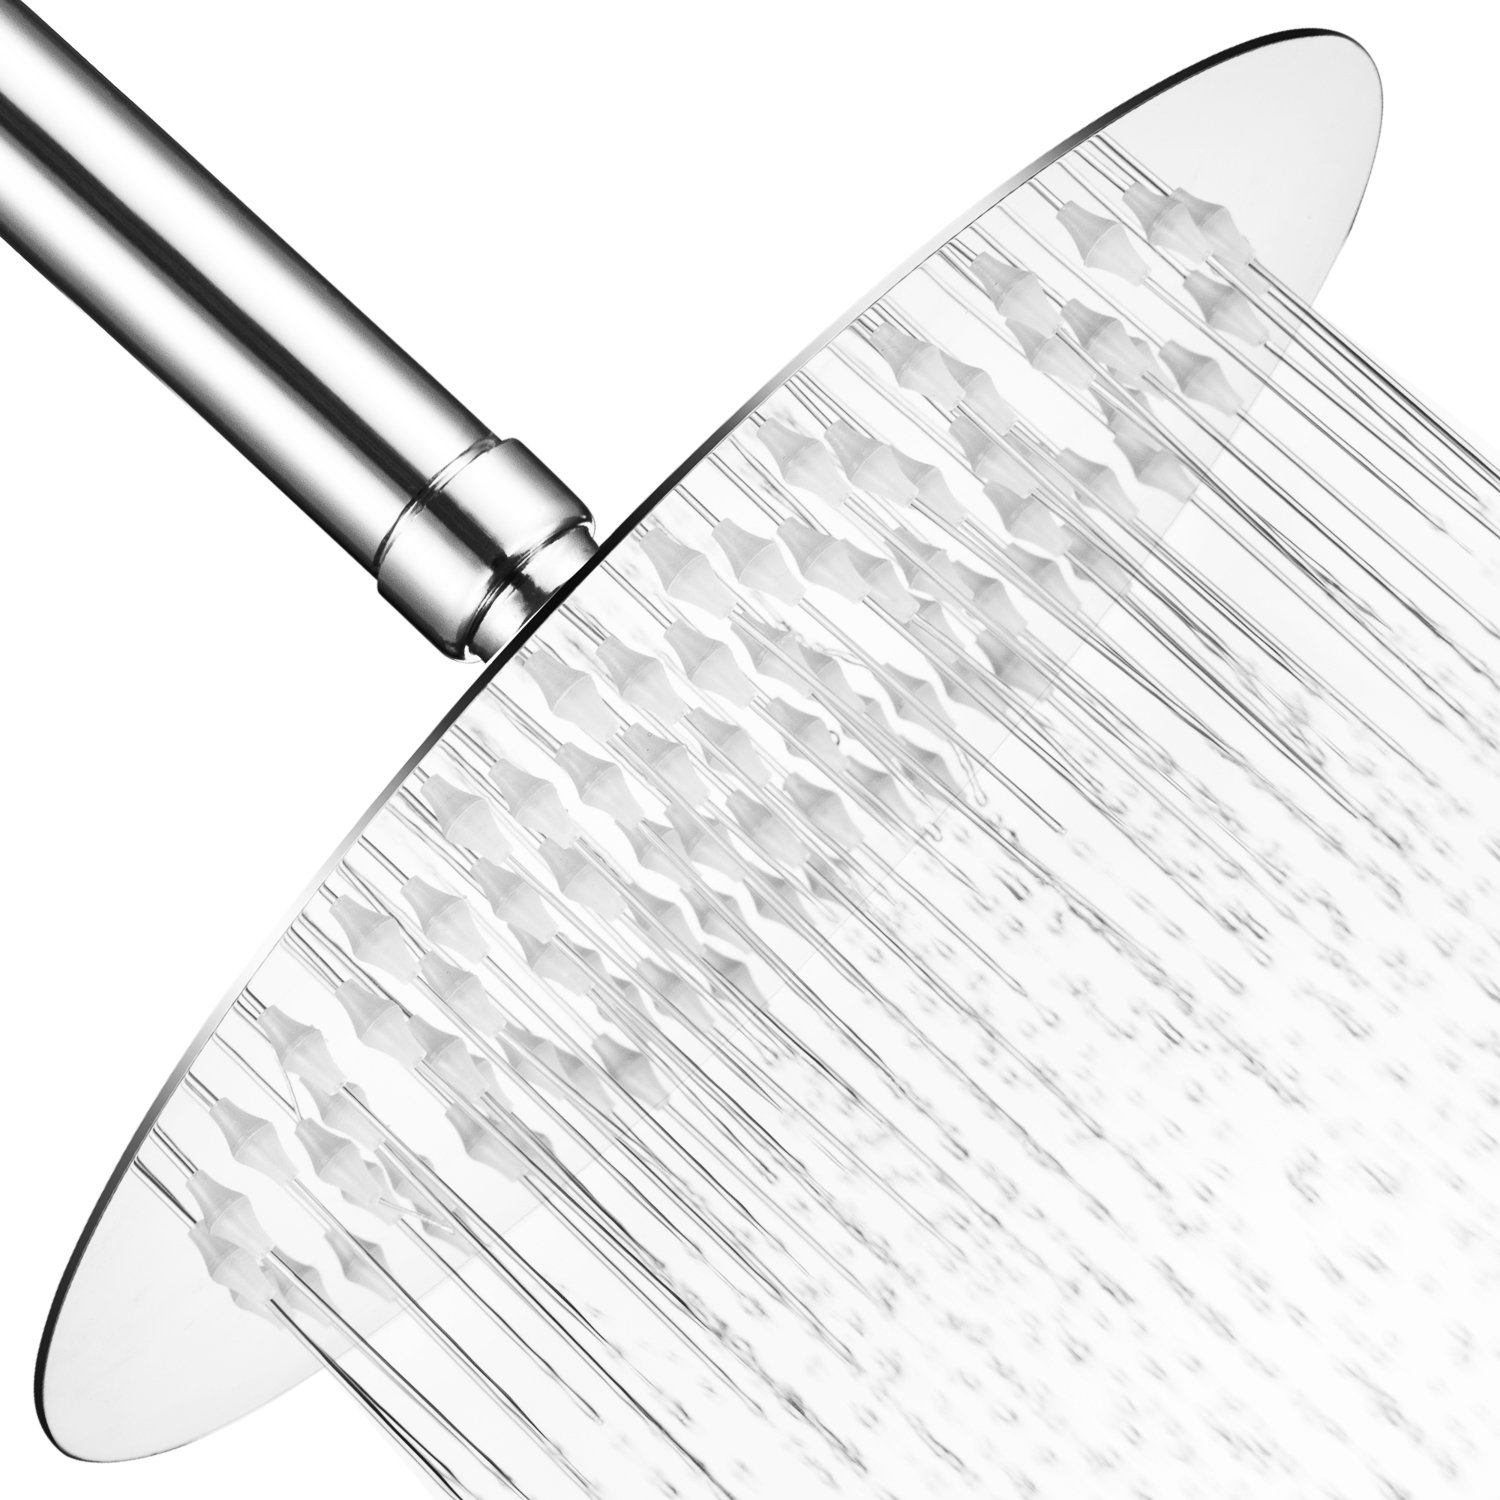 M.HOUSE High Pressure Shower Head 8 inch Stainless Steel Chrome Rain Showerhead with Swivel 360 Degree Adjustable